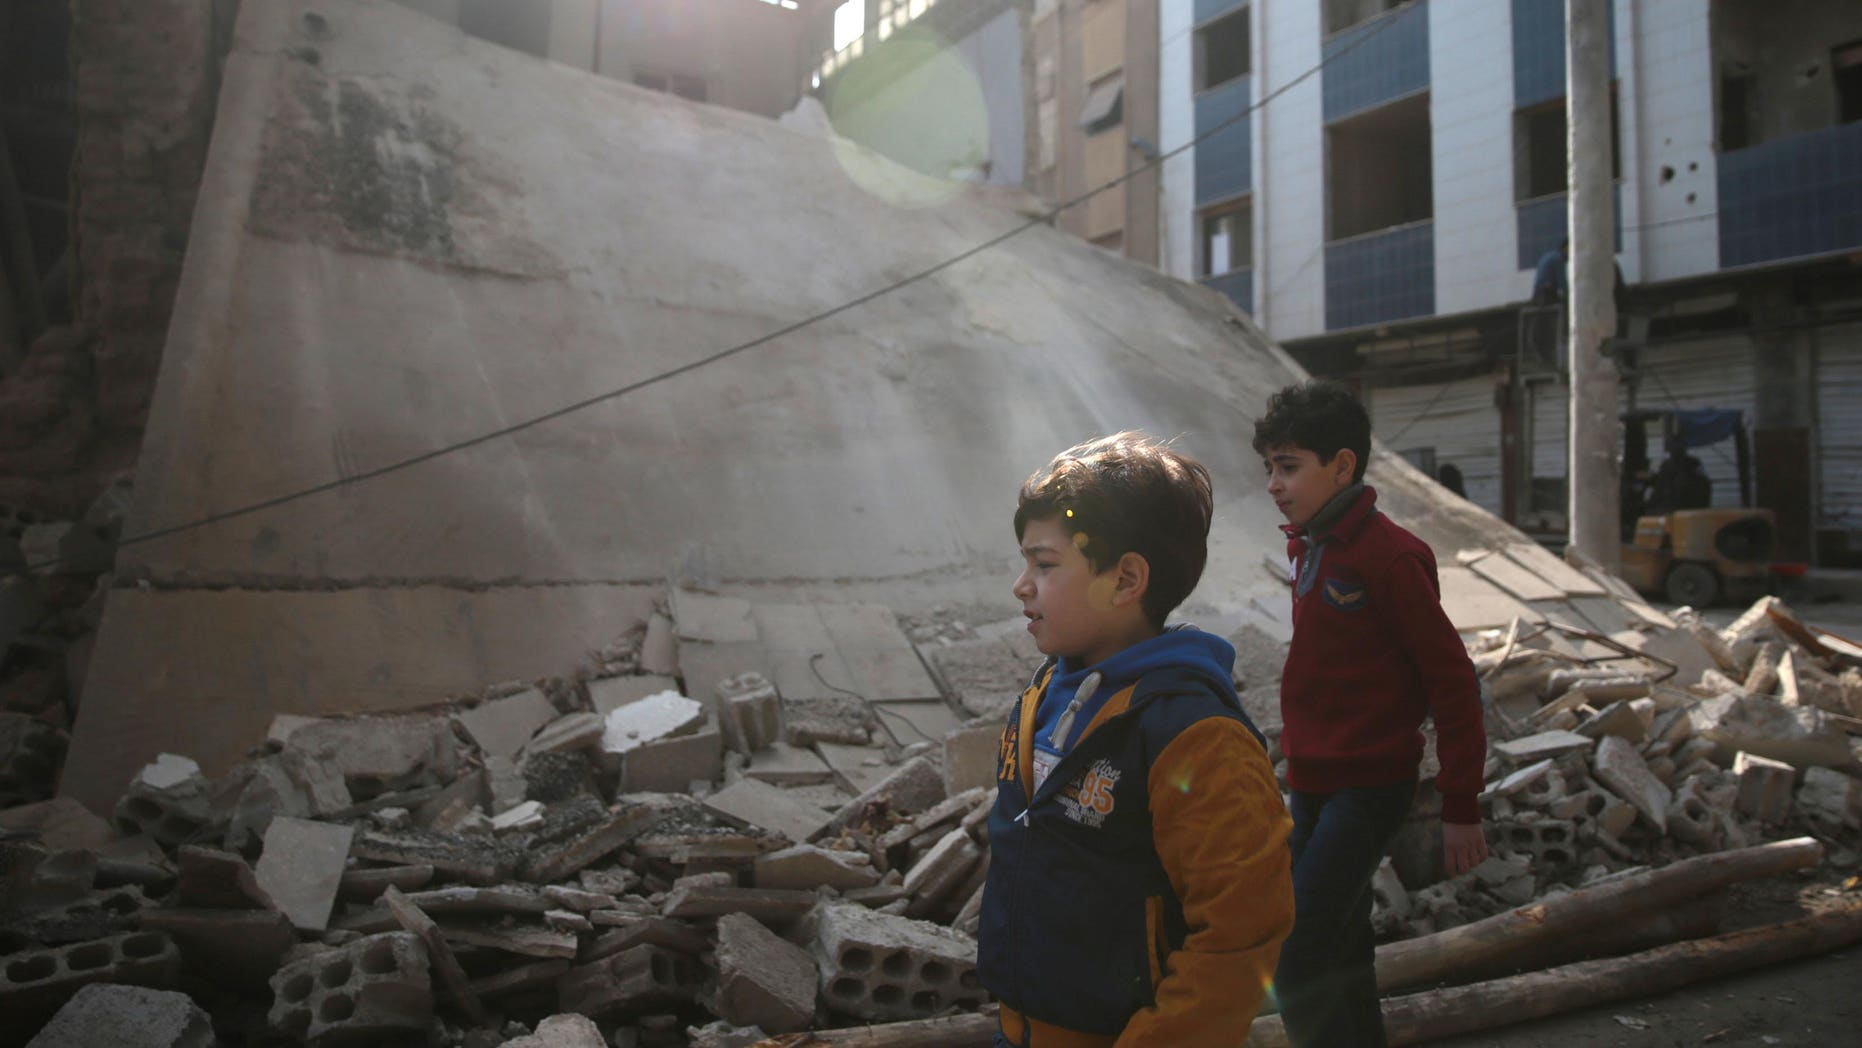 Boys walk near a damaged building in the rebel held besieged city of Douma, in the eastern Damascus suburb of Ghouta, Syria December 30, 2016. REUTERS/Bassam Khabieh - RTX2WYAO